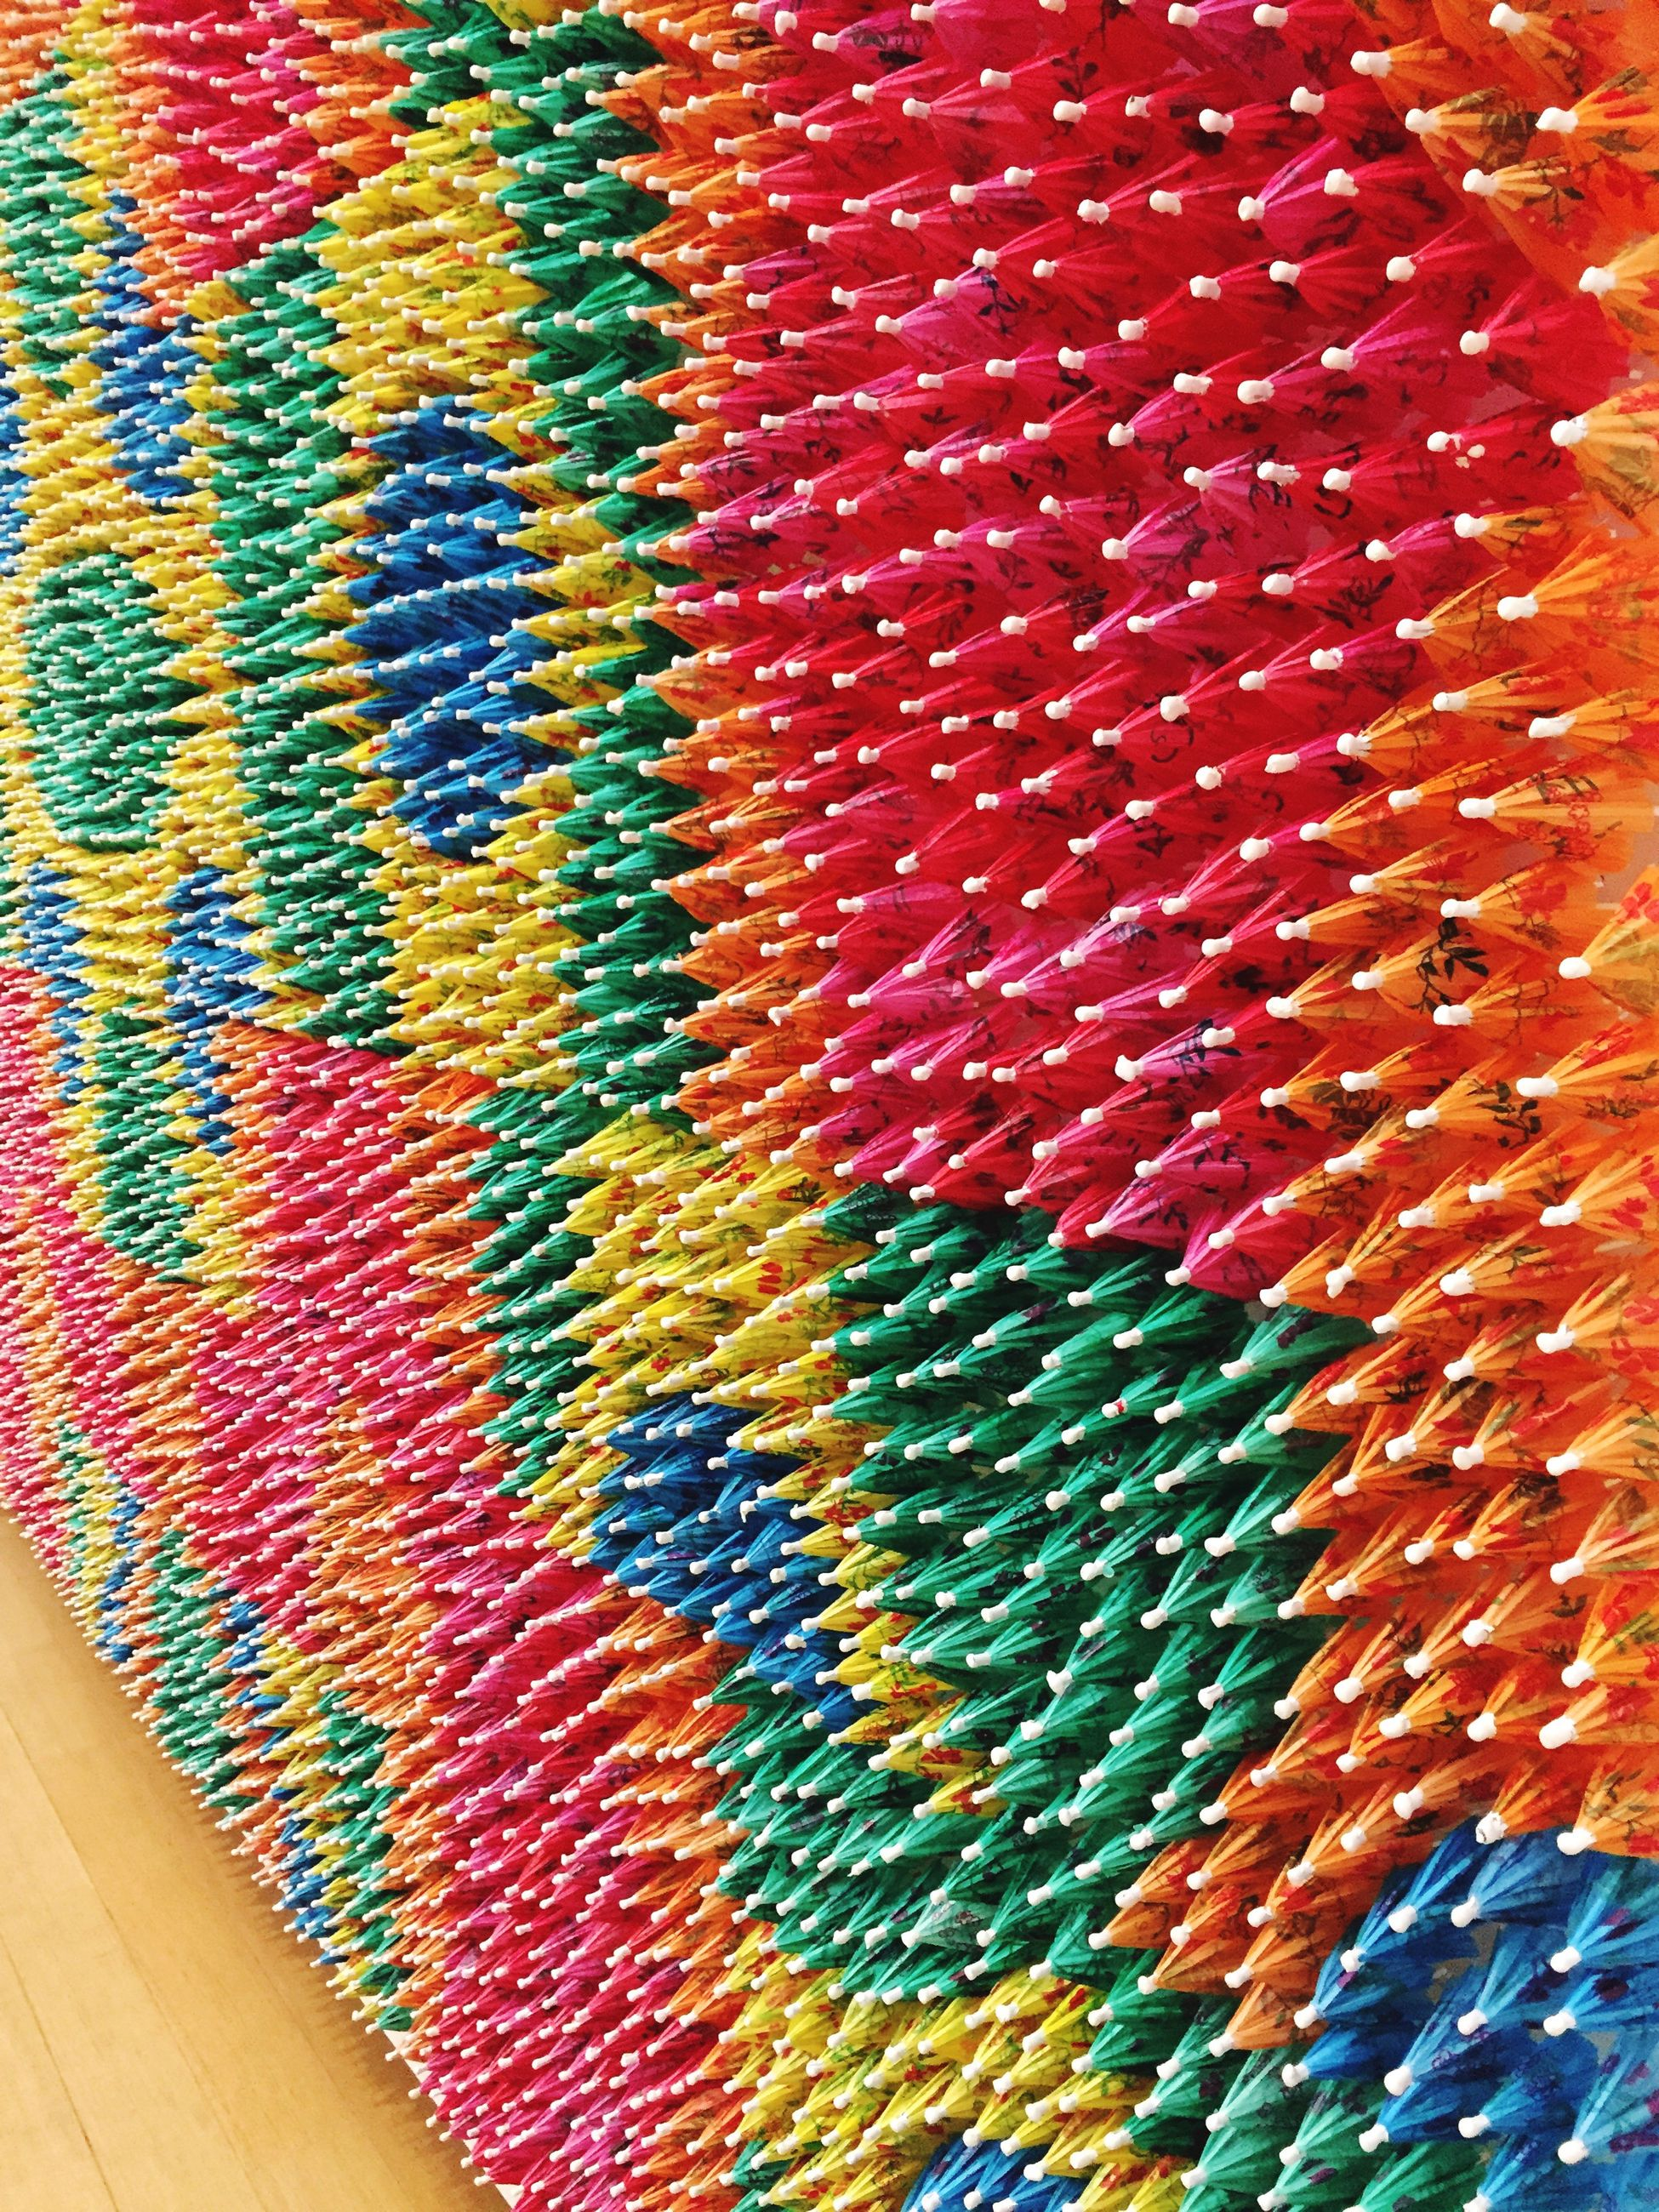 multi colored, art and craft, textile, pattern, backgrounds, woven, red, abstract, close-up, craft product, full frame, no people, textured, cultures, weaving, day, outdoors